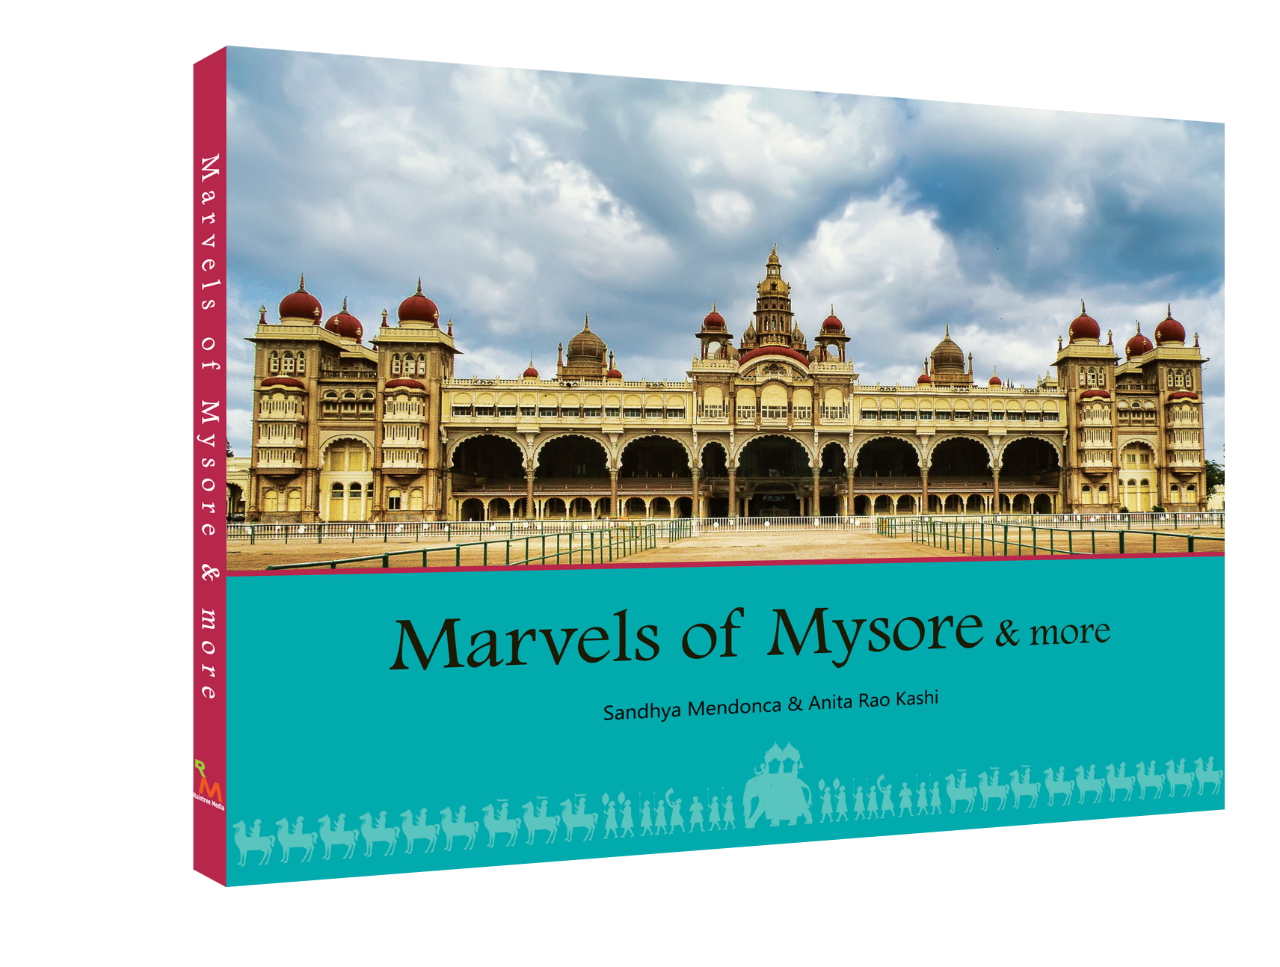 Marvels of Mysore & more